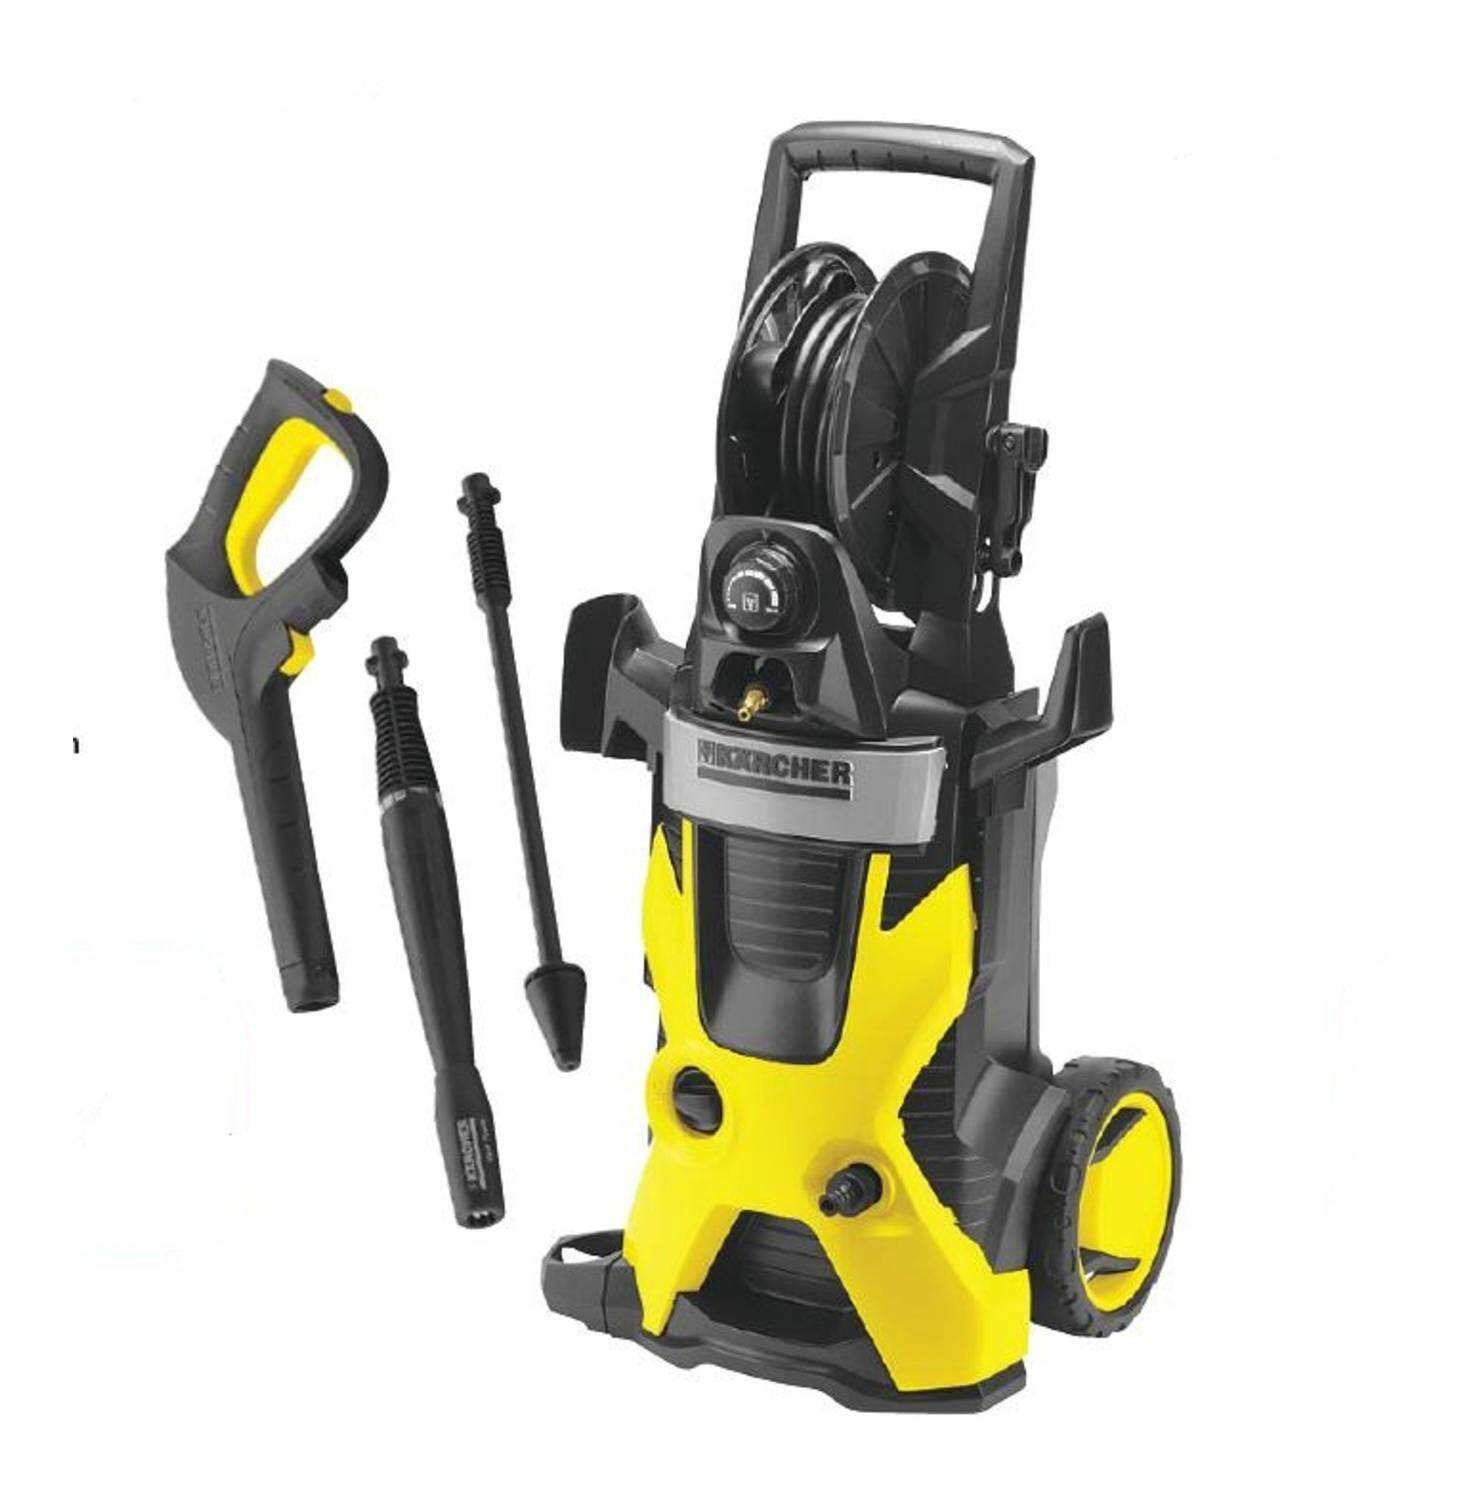 buy & sell cheapest karcher k5 premium best quality product deals